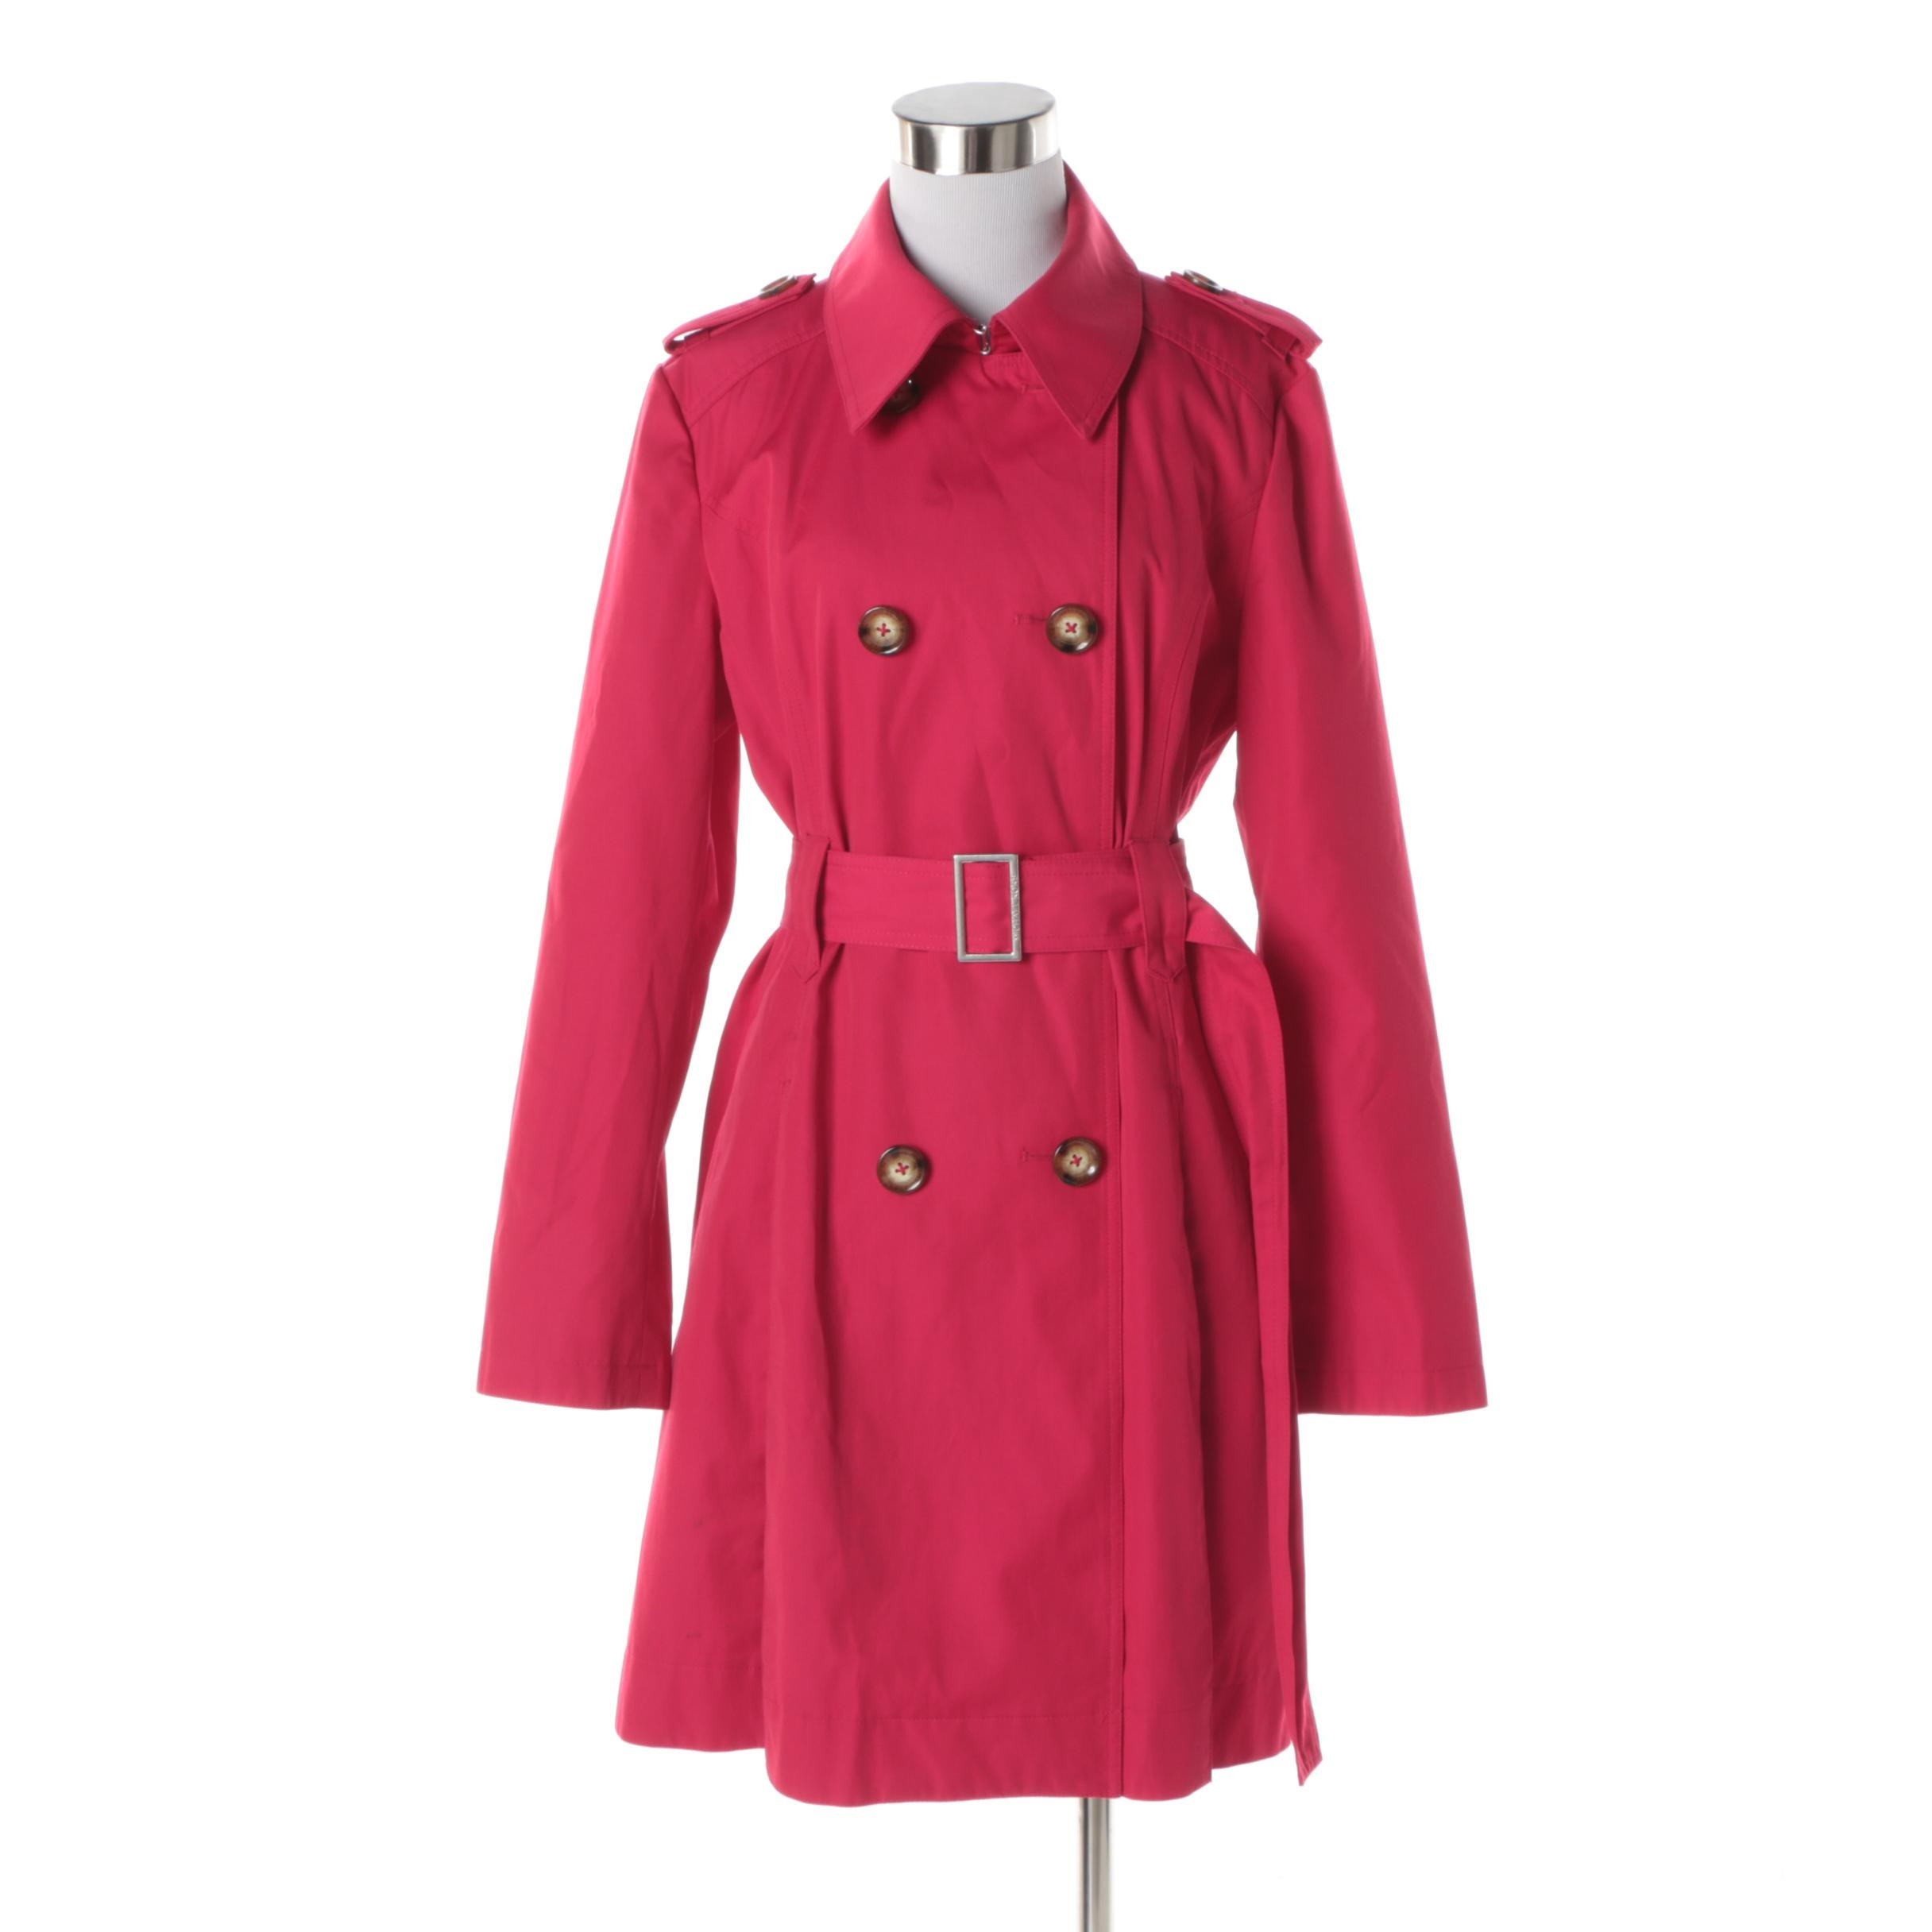 Women's MICHAEL Michael Kors Pink Double-Breasted Trench Coat